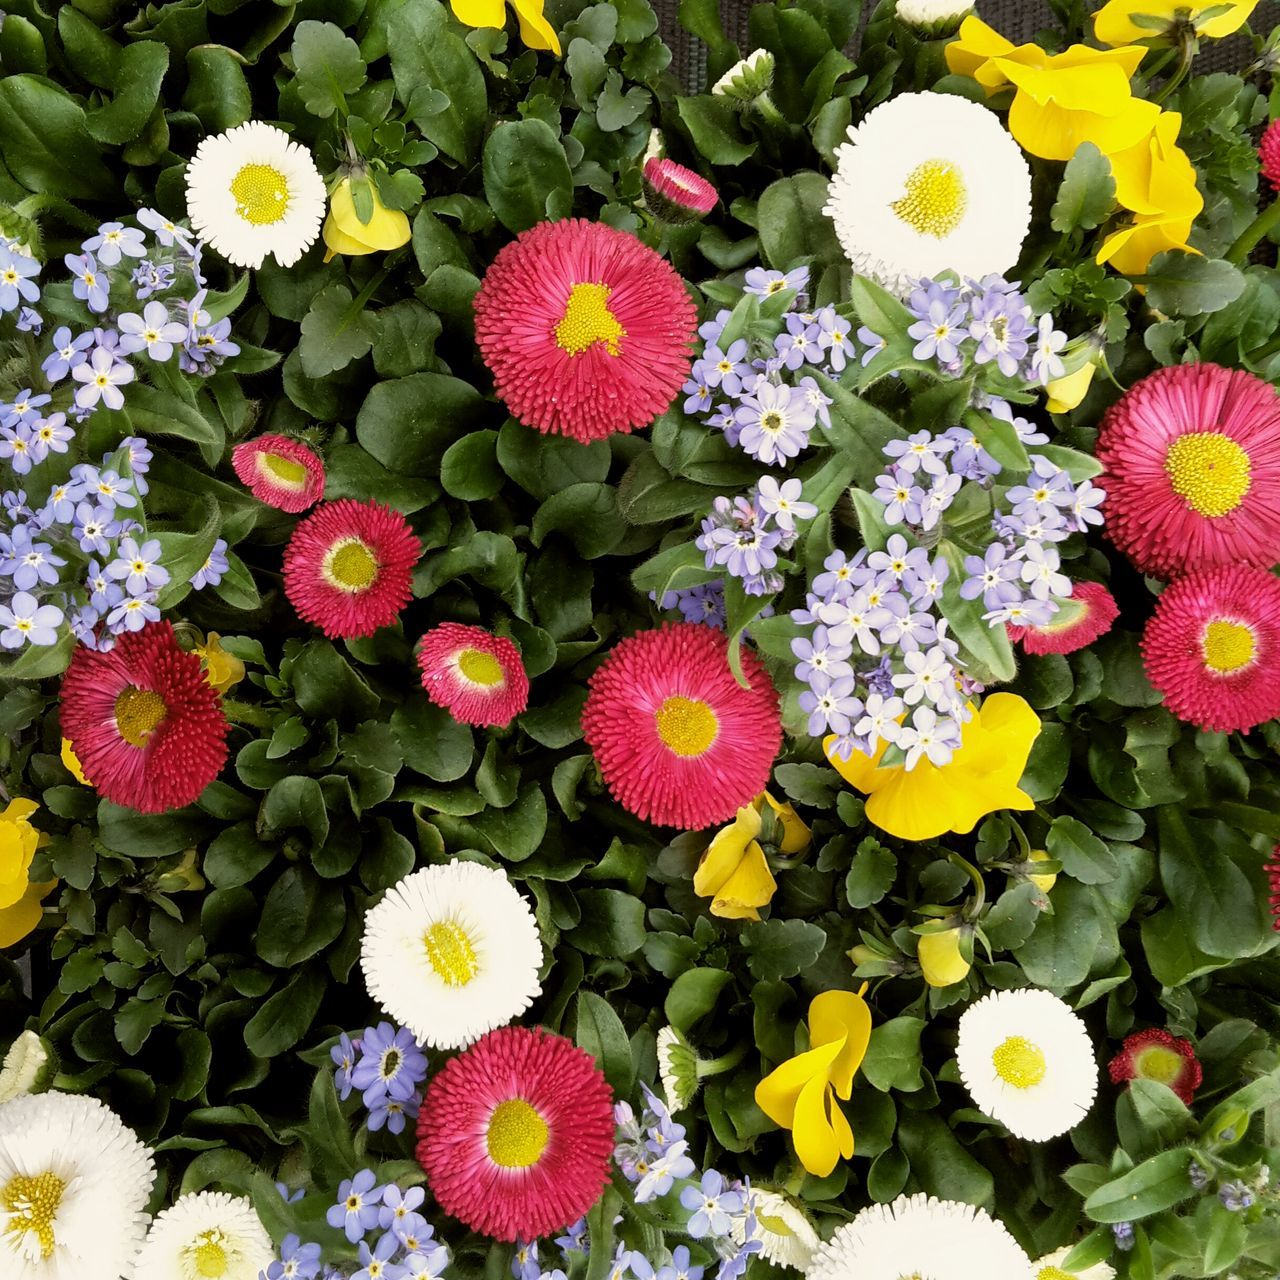 Colorful spring flowers Flower Freshness Beauty In Nature Petal Fragility Nature Plant Multi Colored Flower Head Growth No People Beauty Outdoors Day First Flowers Springtime Spring Colorful Color Joyful Full Frame Close-up Blooming Forget Me Not Daisy pansy